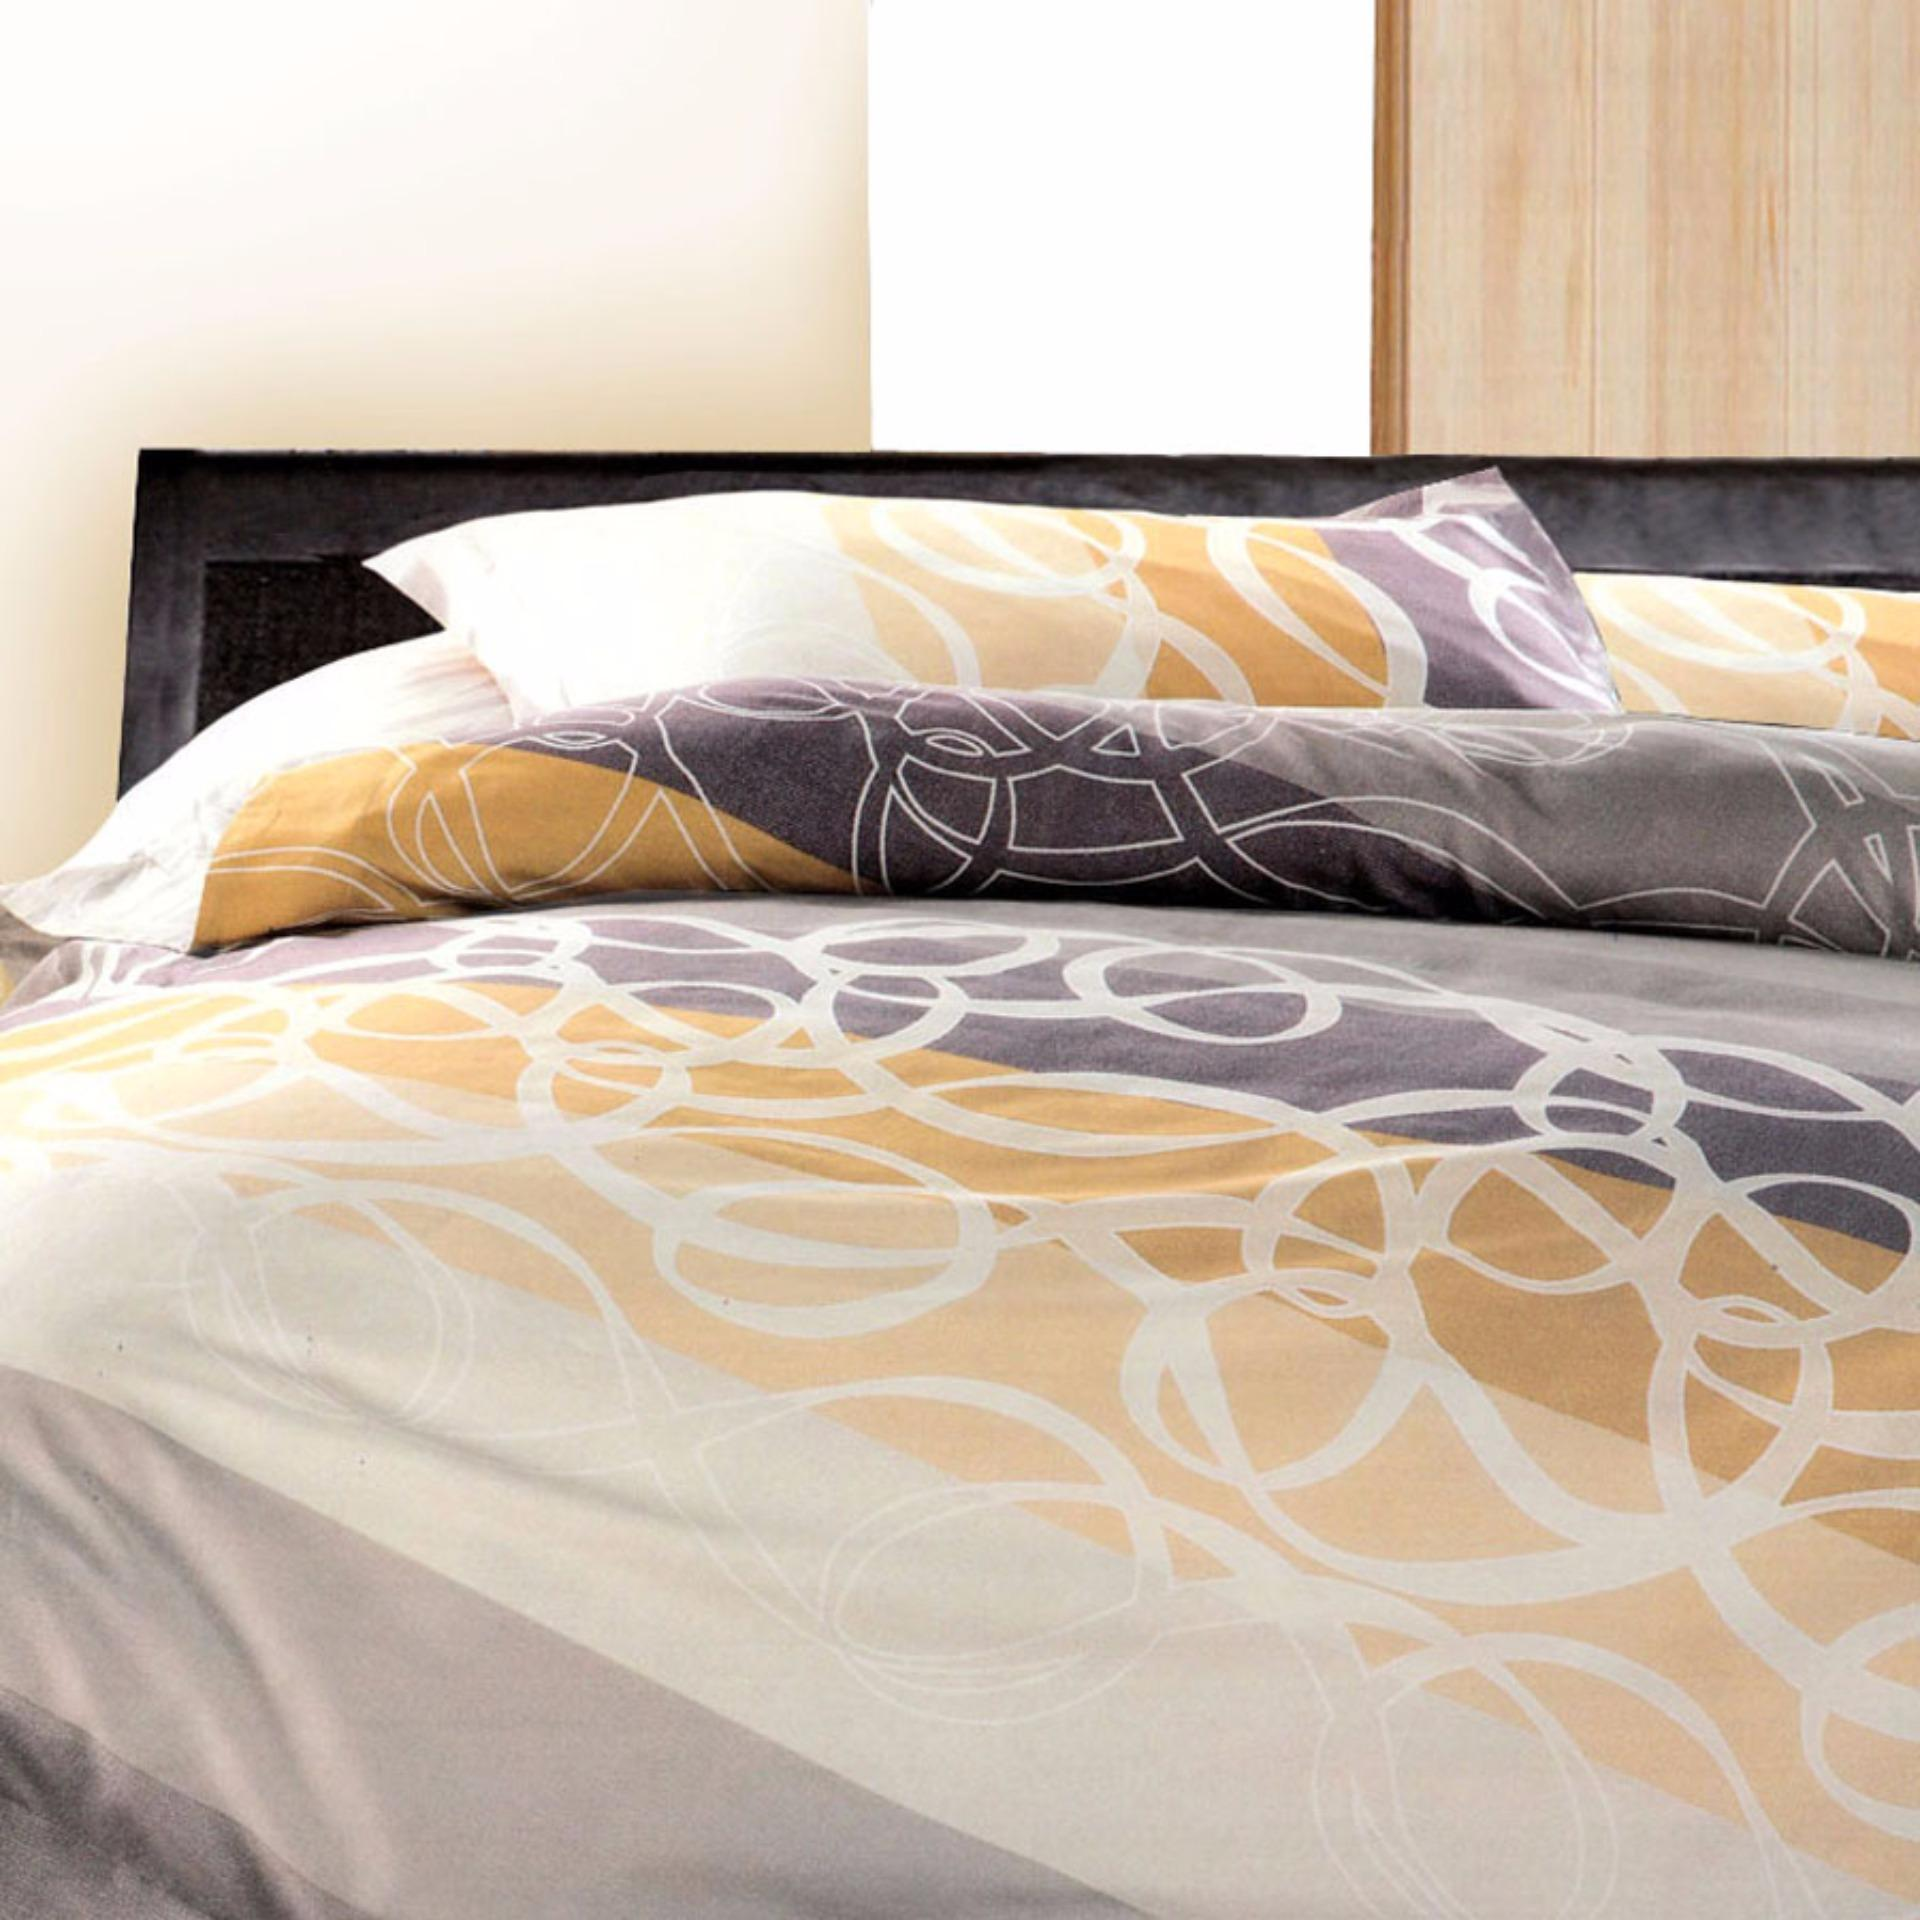 Essina Sunset Quilt Cover & Fitted Bed Sheet set Cadar King / Queen 100% Cotton 620TC 40cm High Mattress